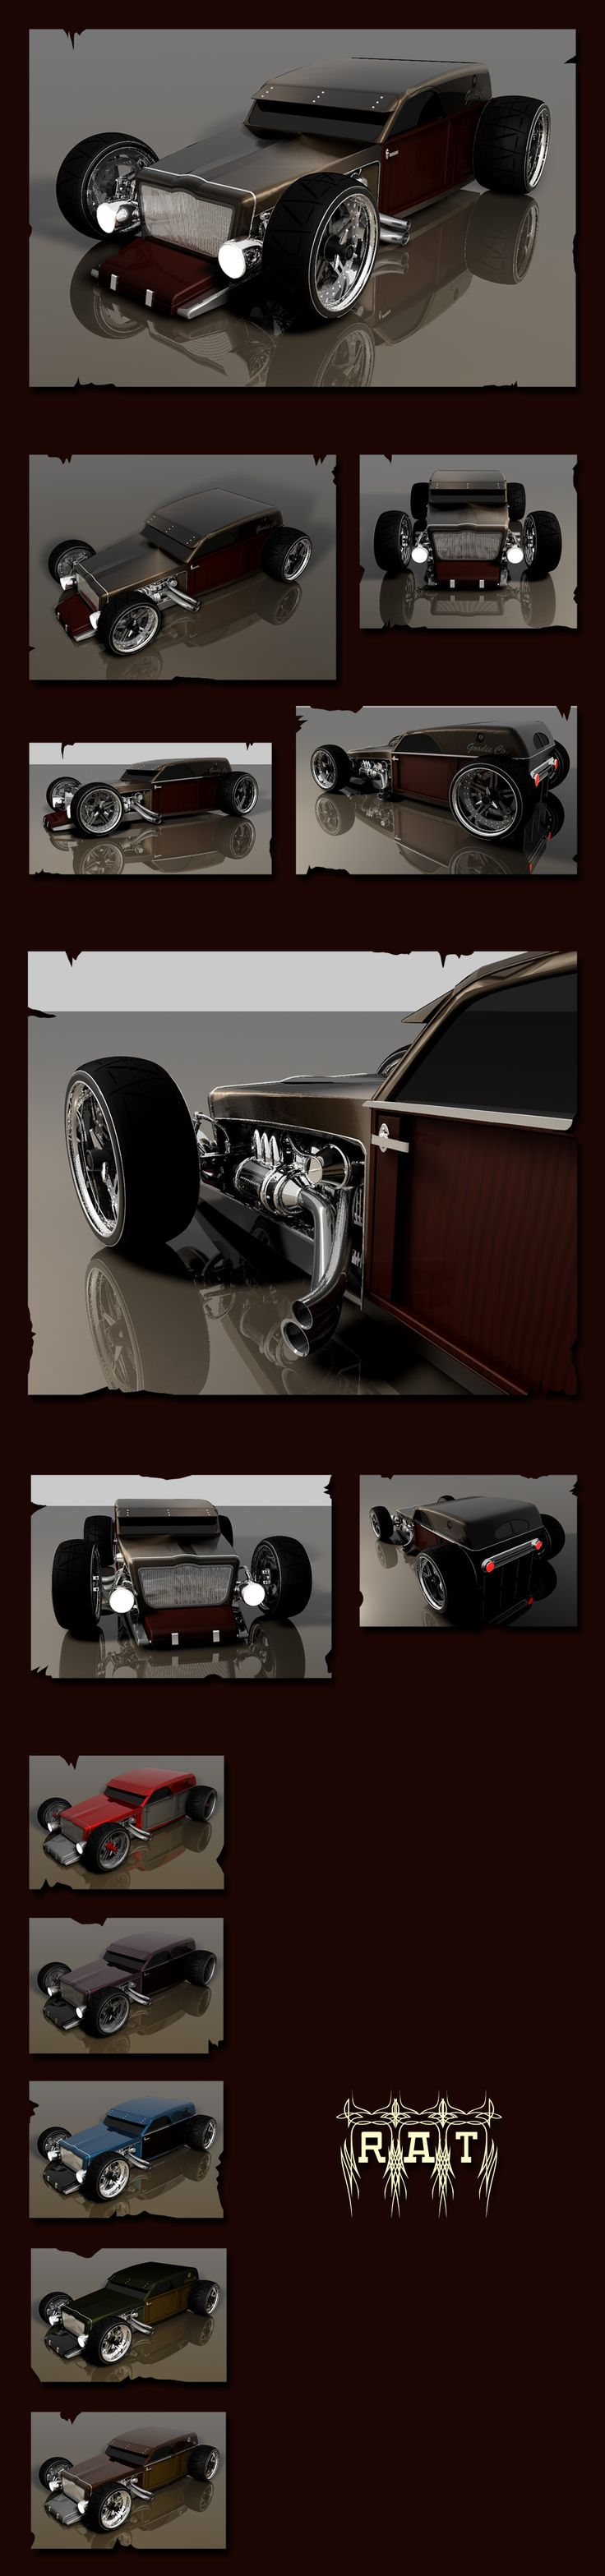 Ideas for my new street rod (More at pinterest.com/gary5mith/ideas-for-my-new-street-rod/)  R.A.T. by LadyDeuce